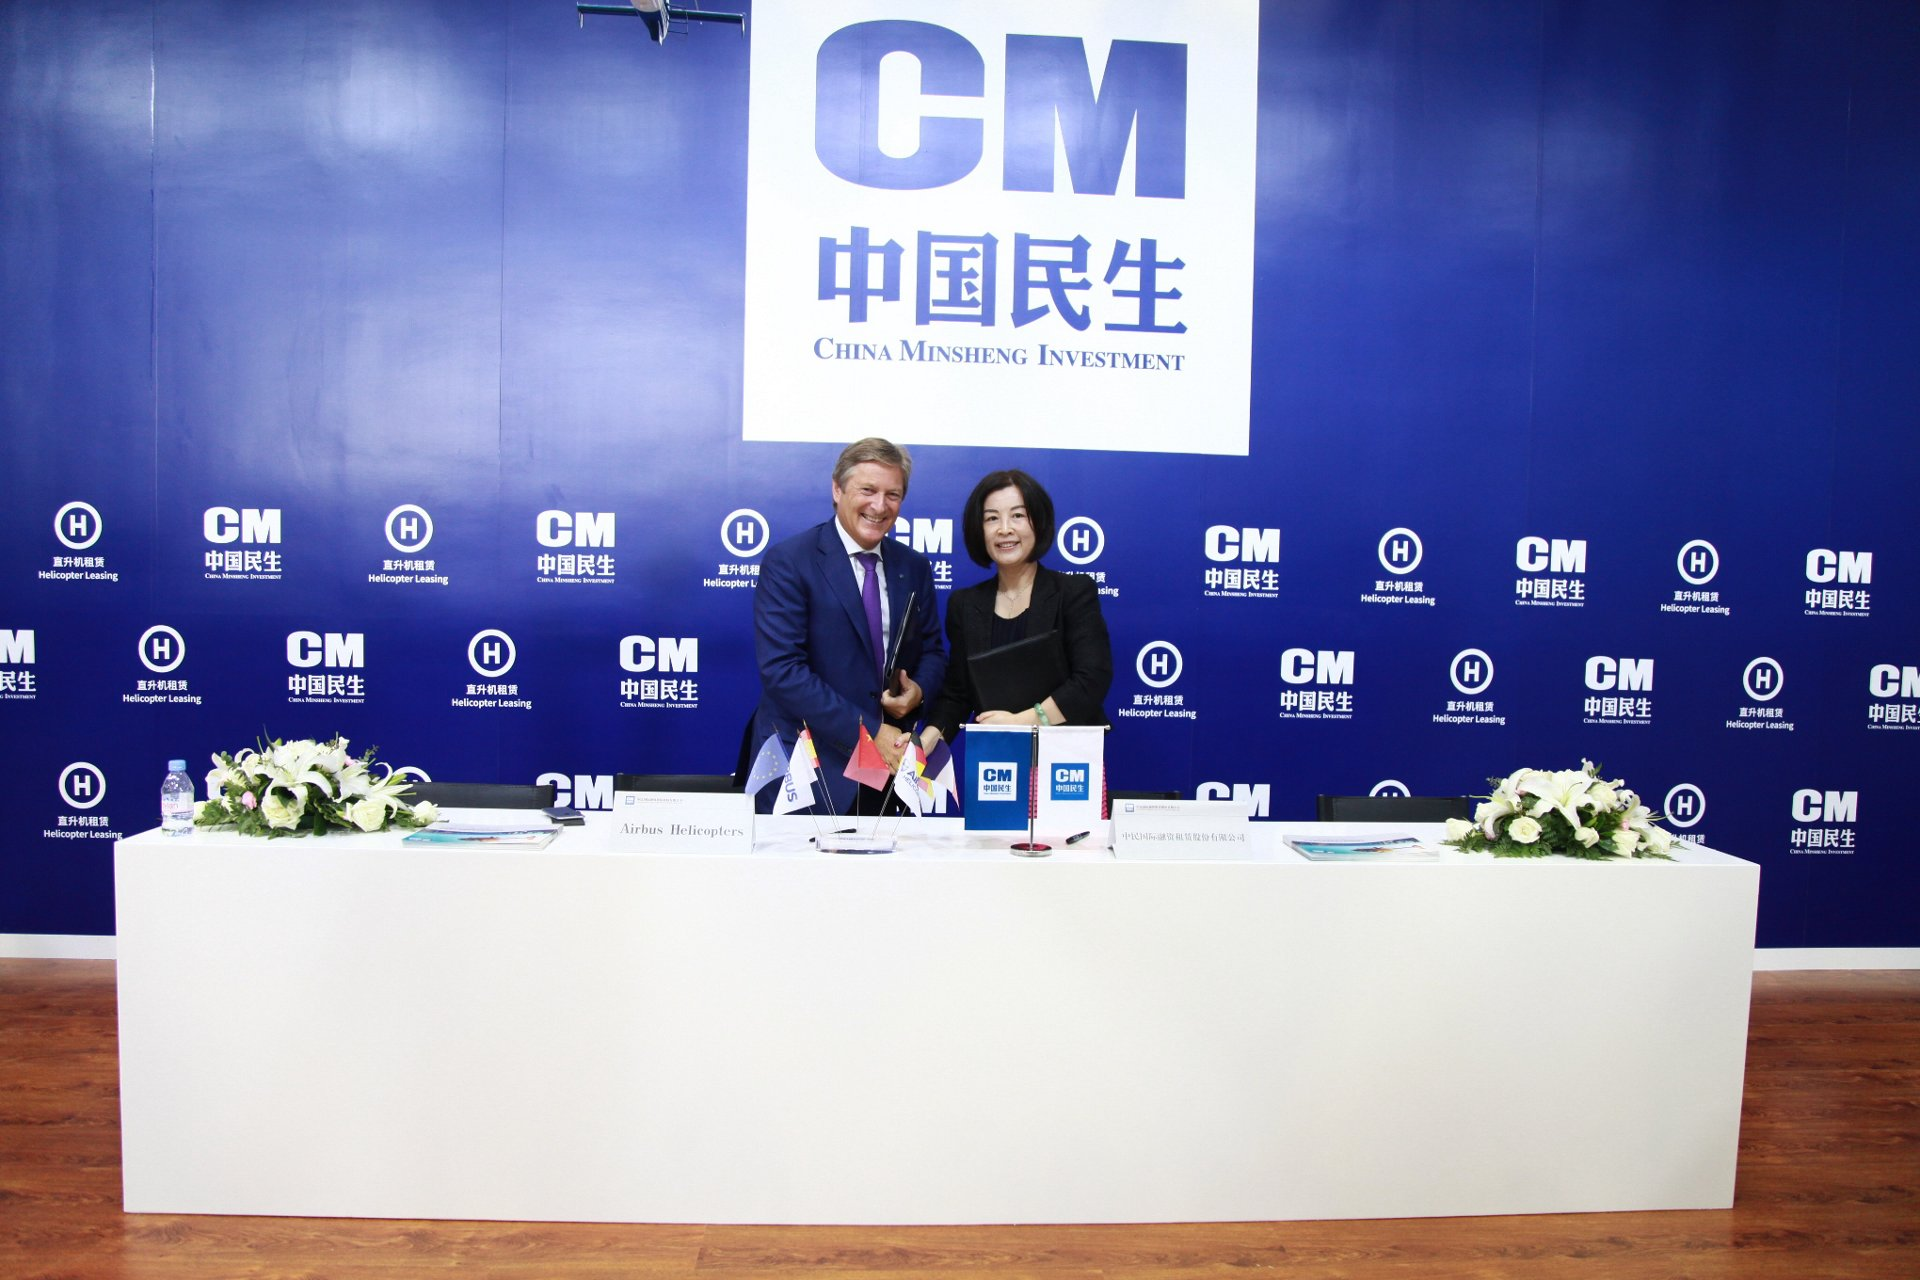 Chinese leasing company CMIFL signs agreement for 100 H125-H130 helicopters over five years